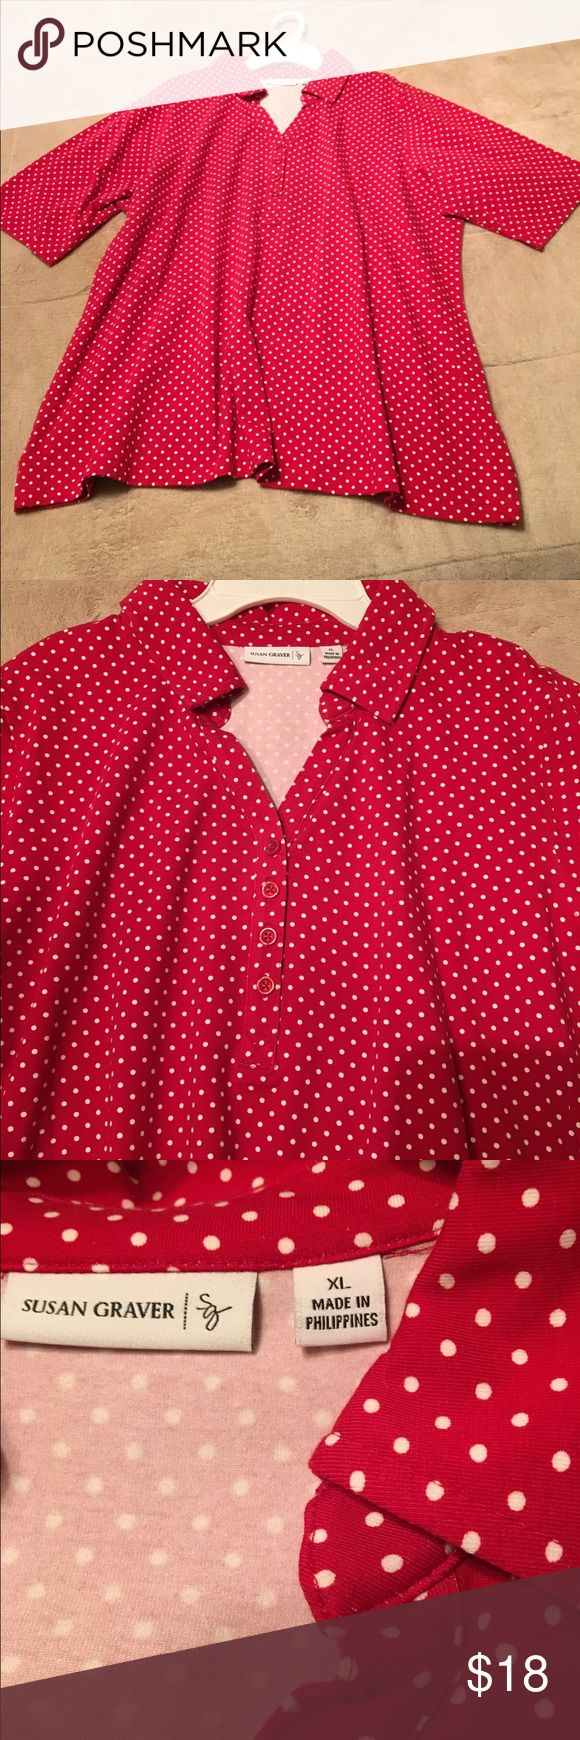 Susan Graver red and white polka dot top Susan Graver polka dot top with collar, buttons at neckline, quarter sleeve, NEW without tags as seen on QVC Susan Graver Tops Tees - Short Sleeve